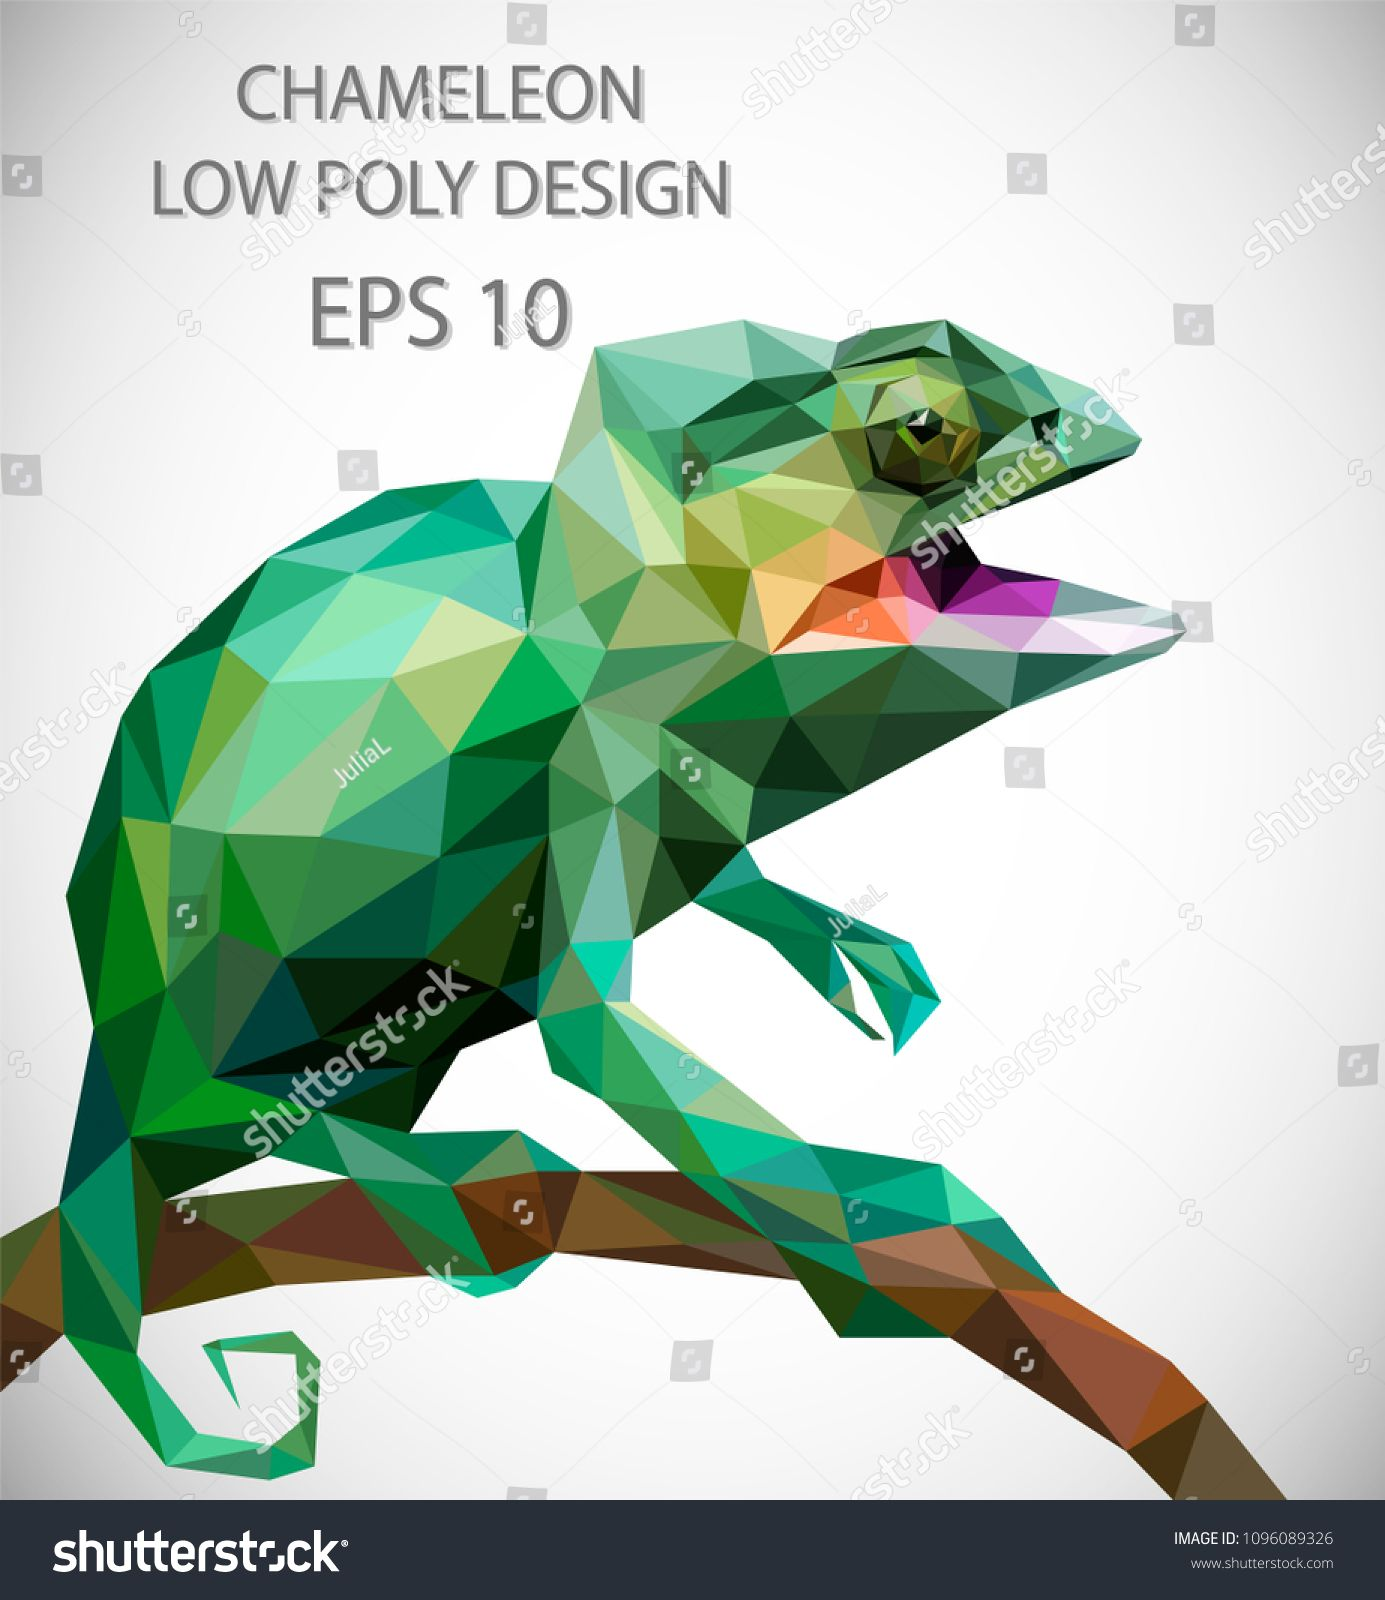 Chameleon Style Vector Design Of Chameleon In Low Poly Style Design Vector